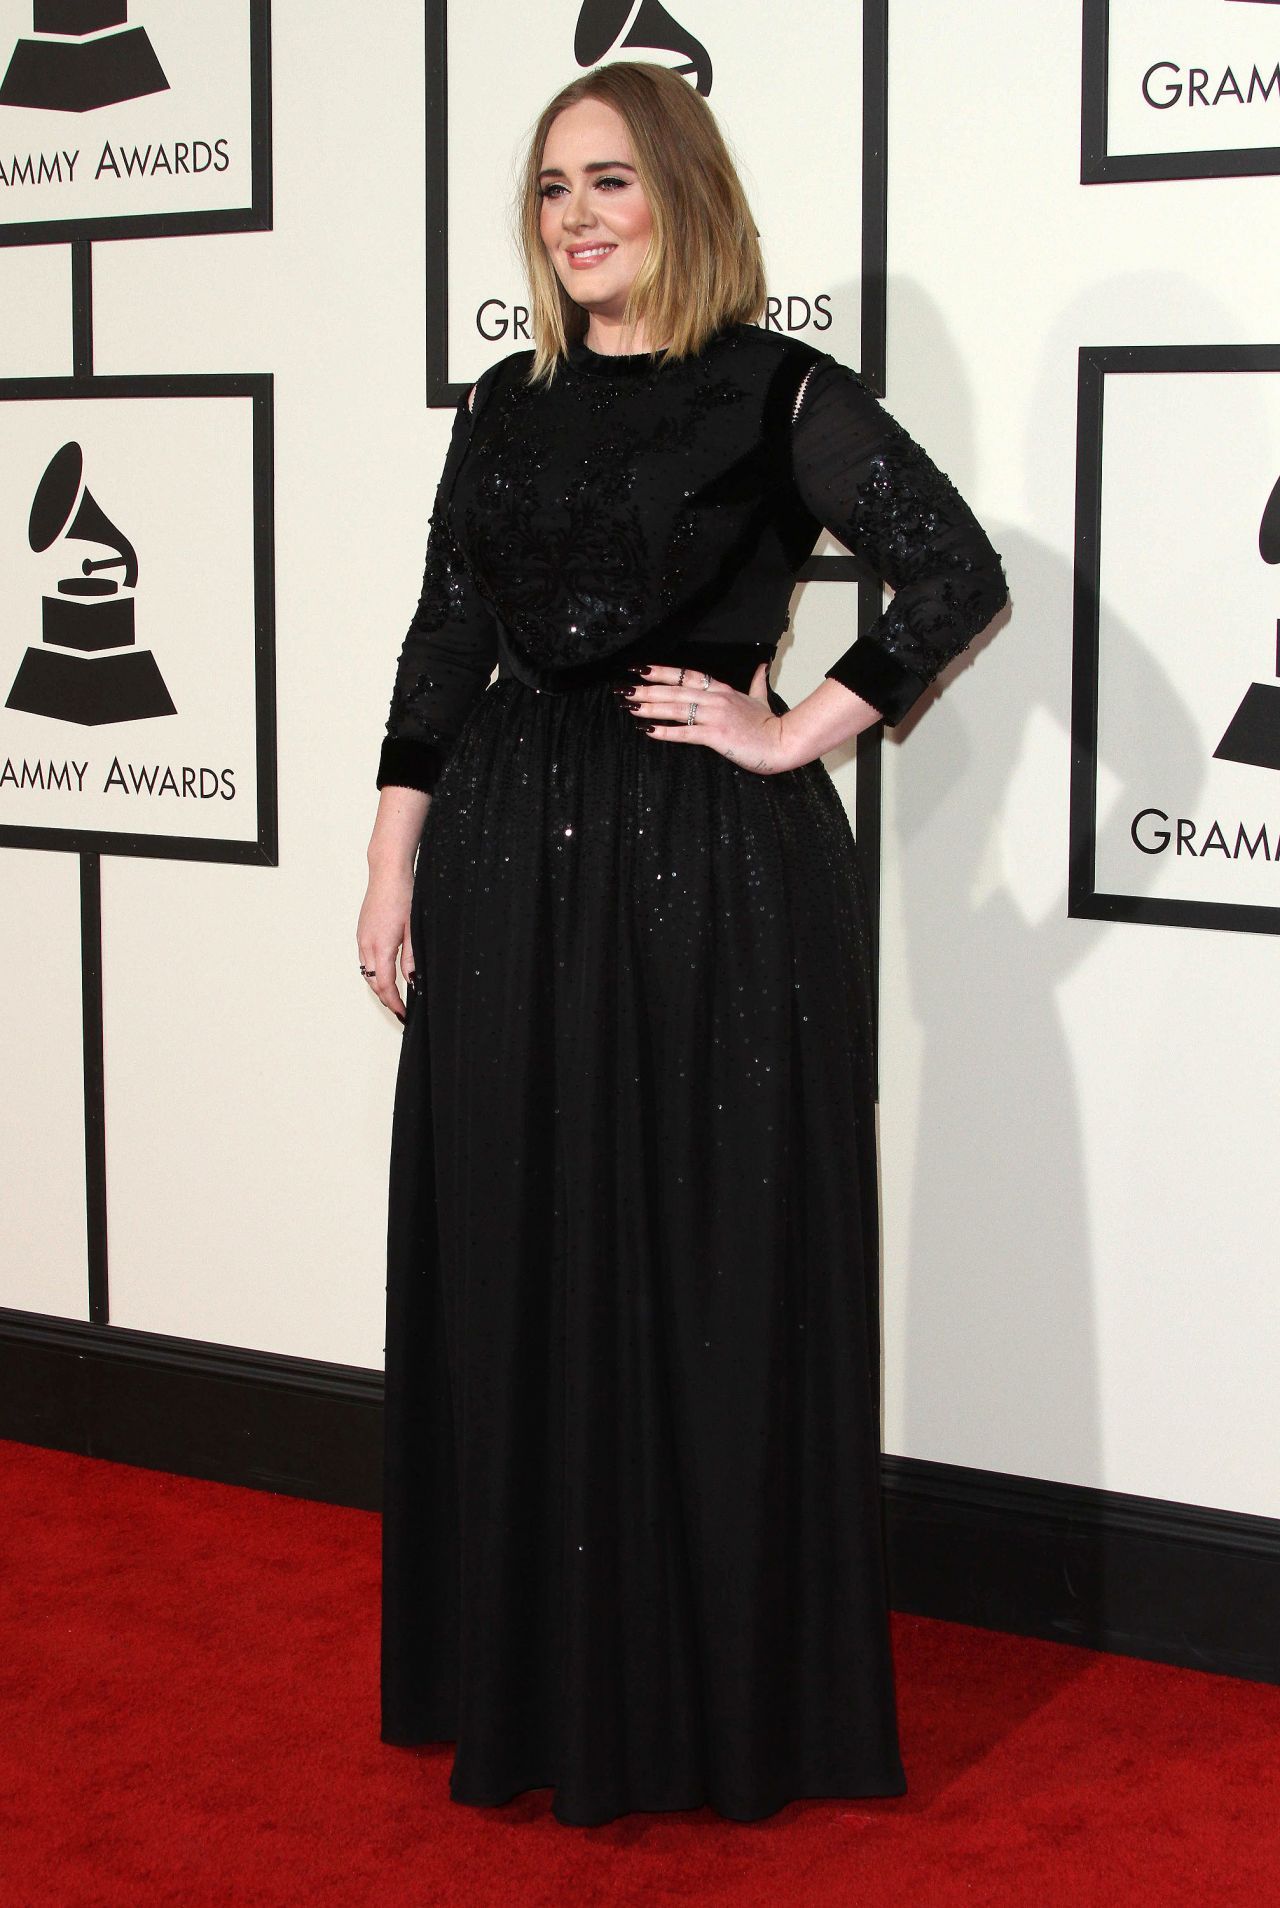 http://celebmafia.com/wp-content/uploads/2016/02/adele-2016-grammy-awards-in-los-angeles-ca-2.jpg